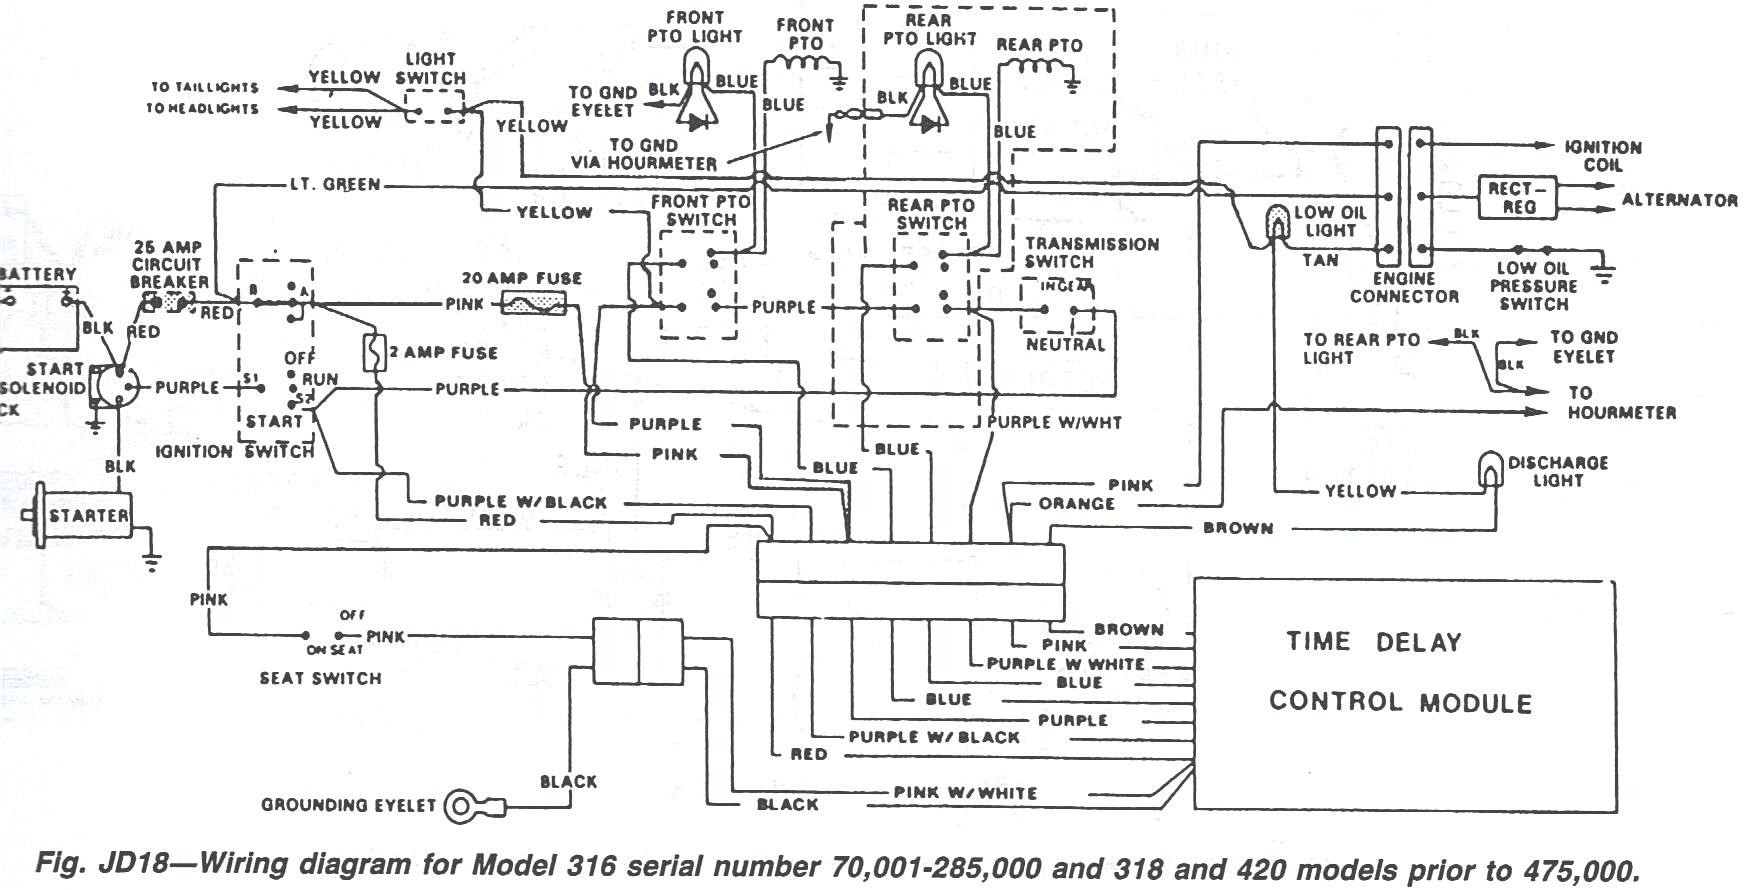 hight resolution of john deere 4600 wiring diagram wiring diagram used john deere 4600 tractor wiring diagram